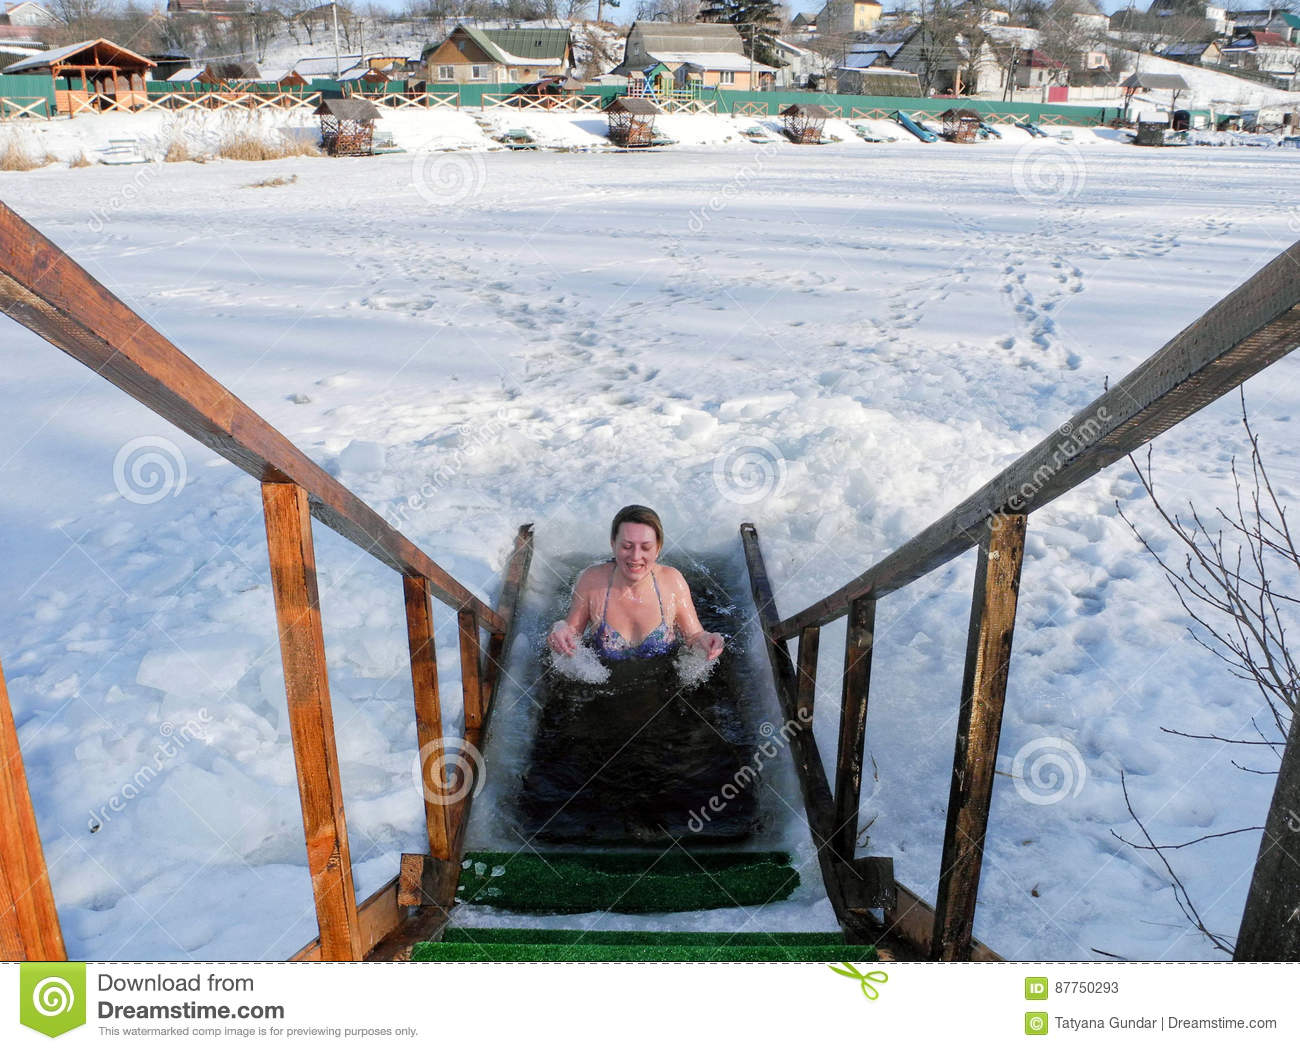 Ice swimming in the winter ice-hole after a sauna.